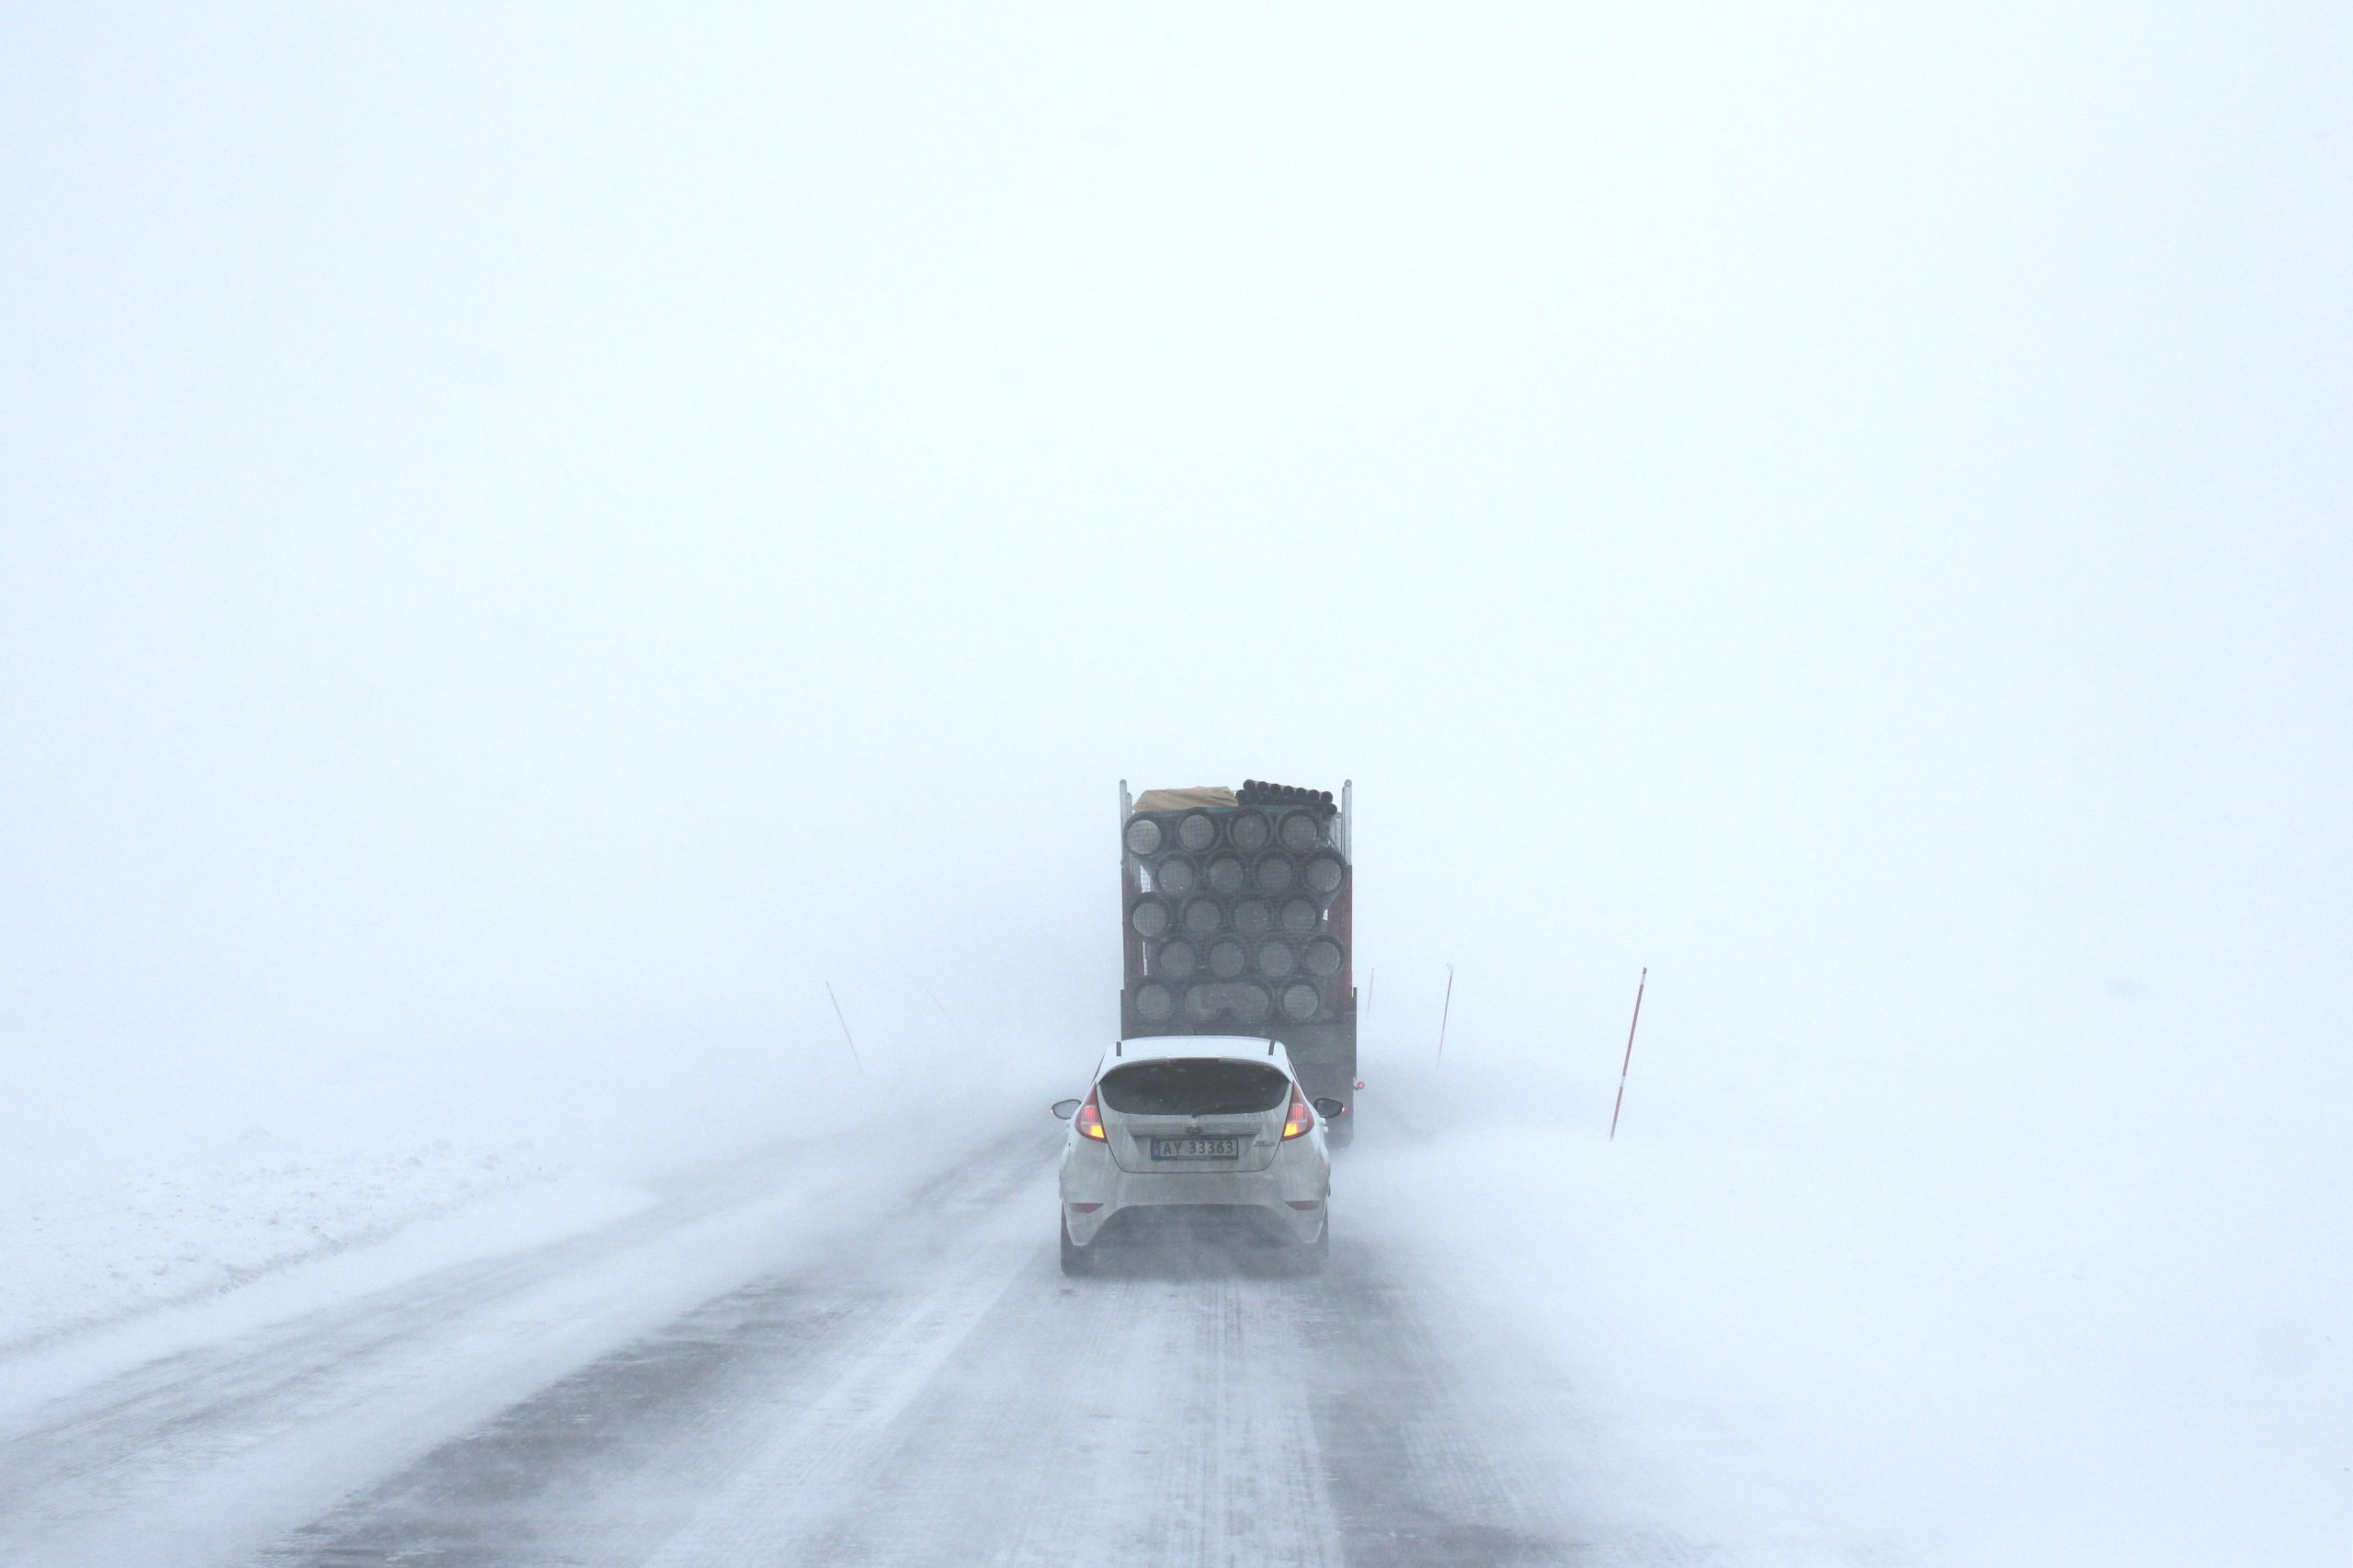 Car following lorry in the snow